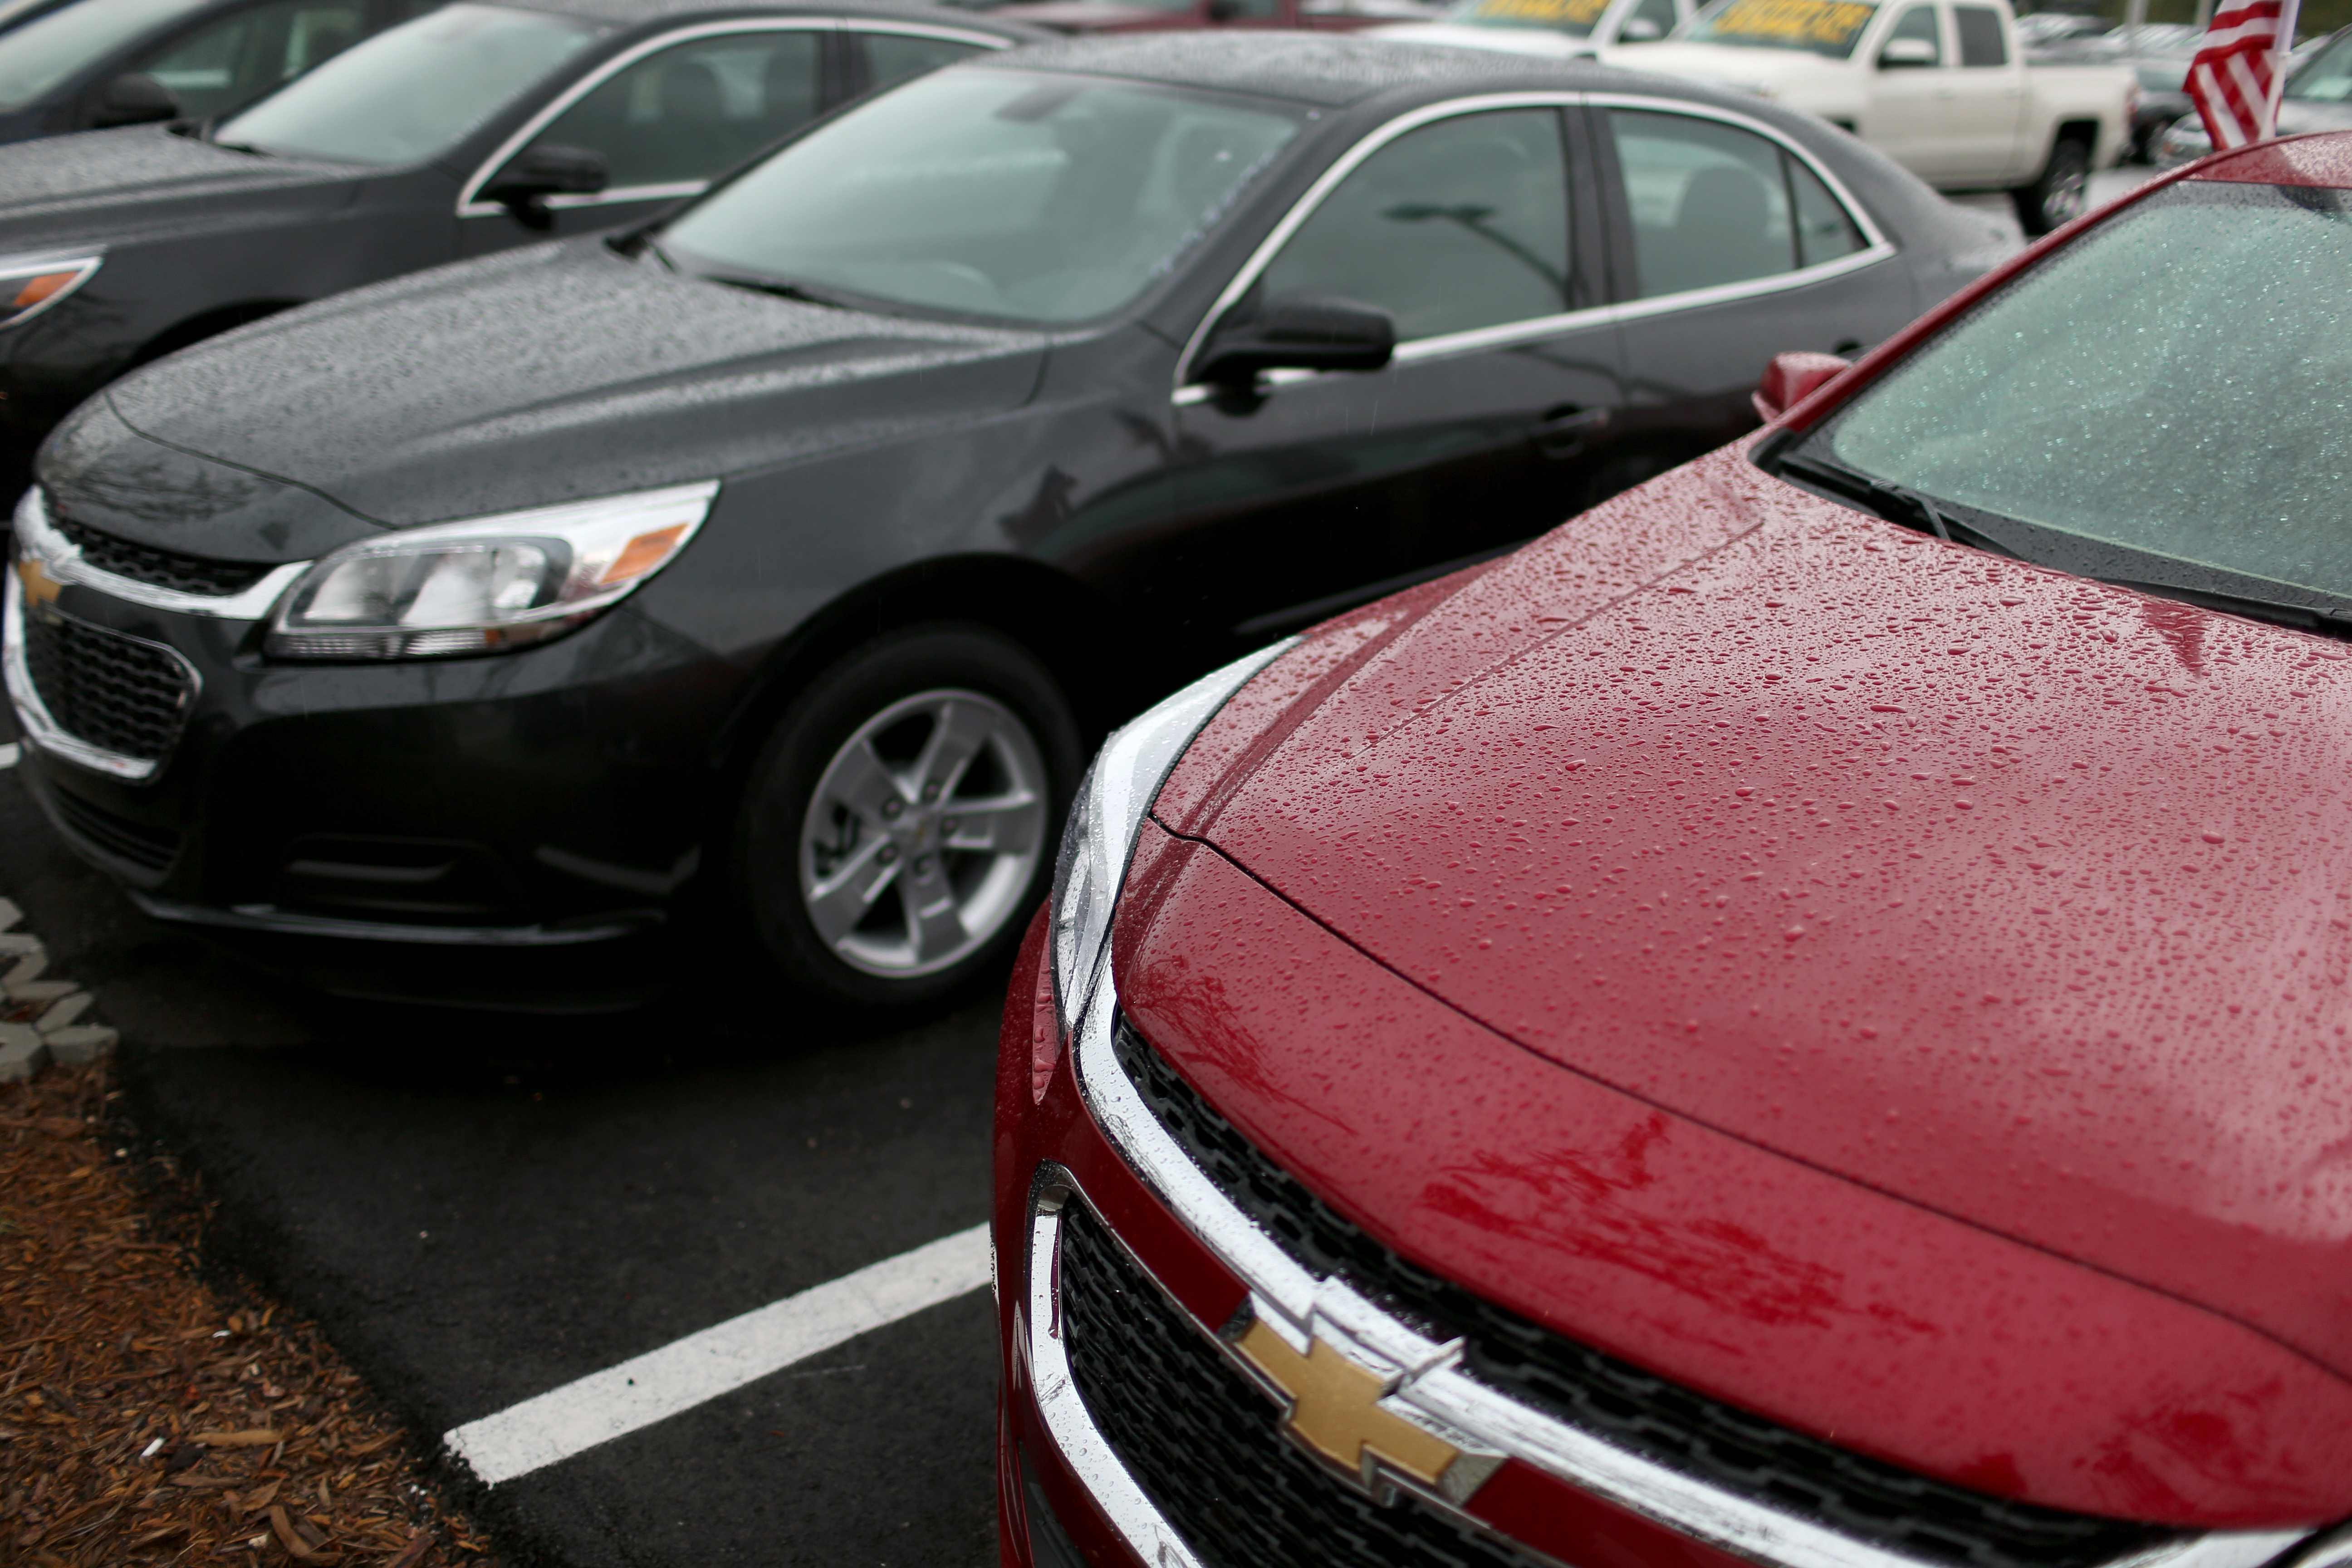 General Motors Chevrolet vehicles are seen on a sales lot on June 30, 2014 in Miami, Florida.